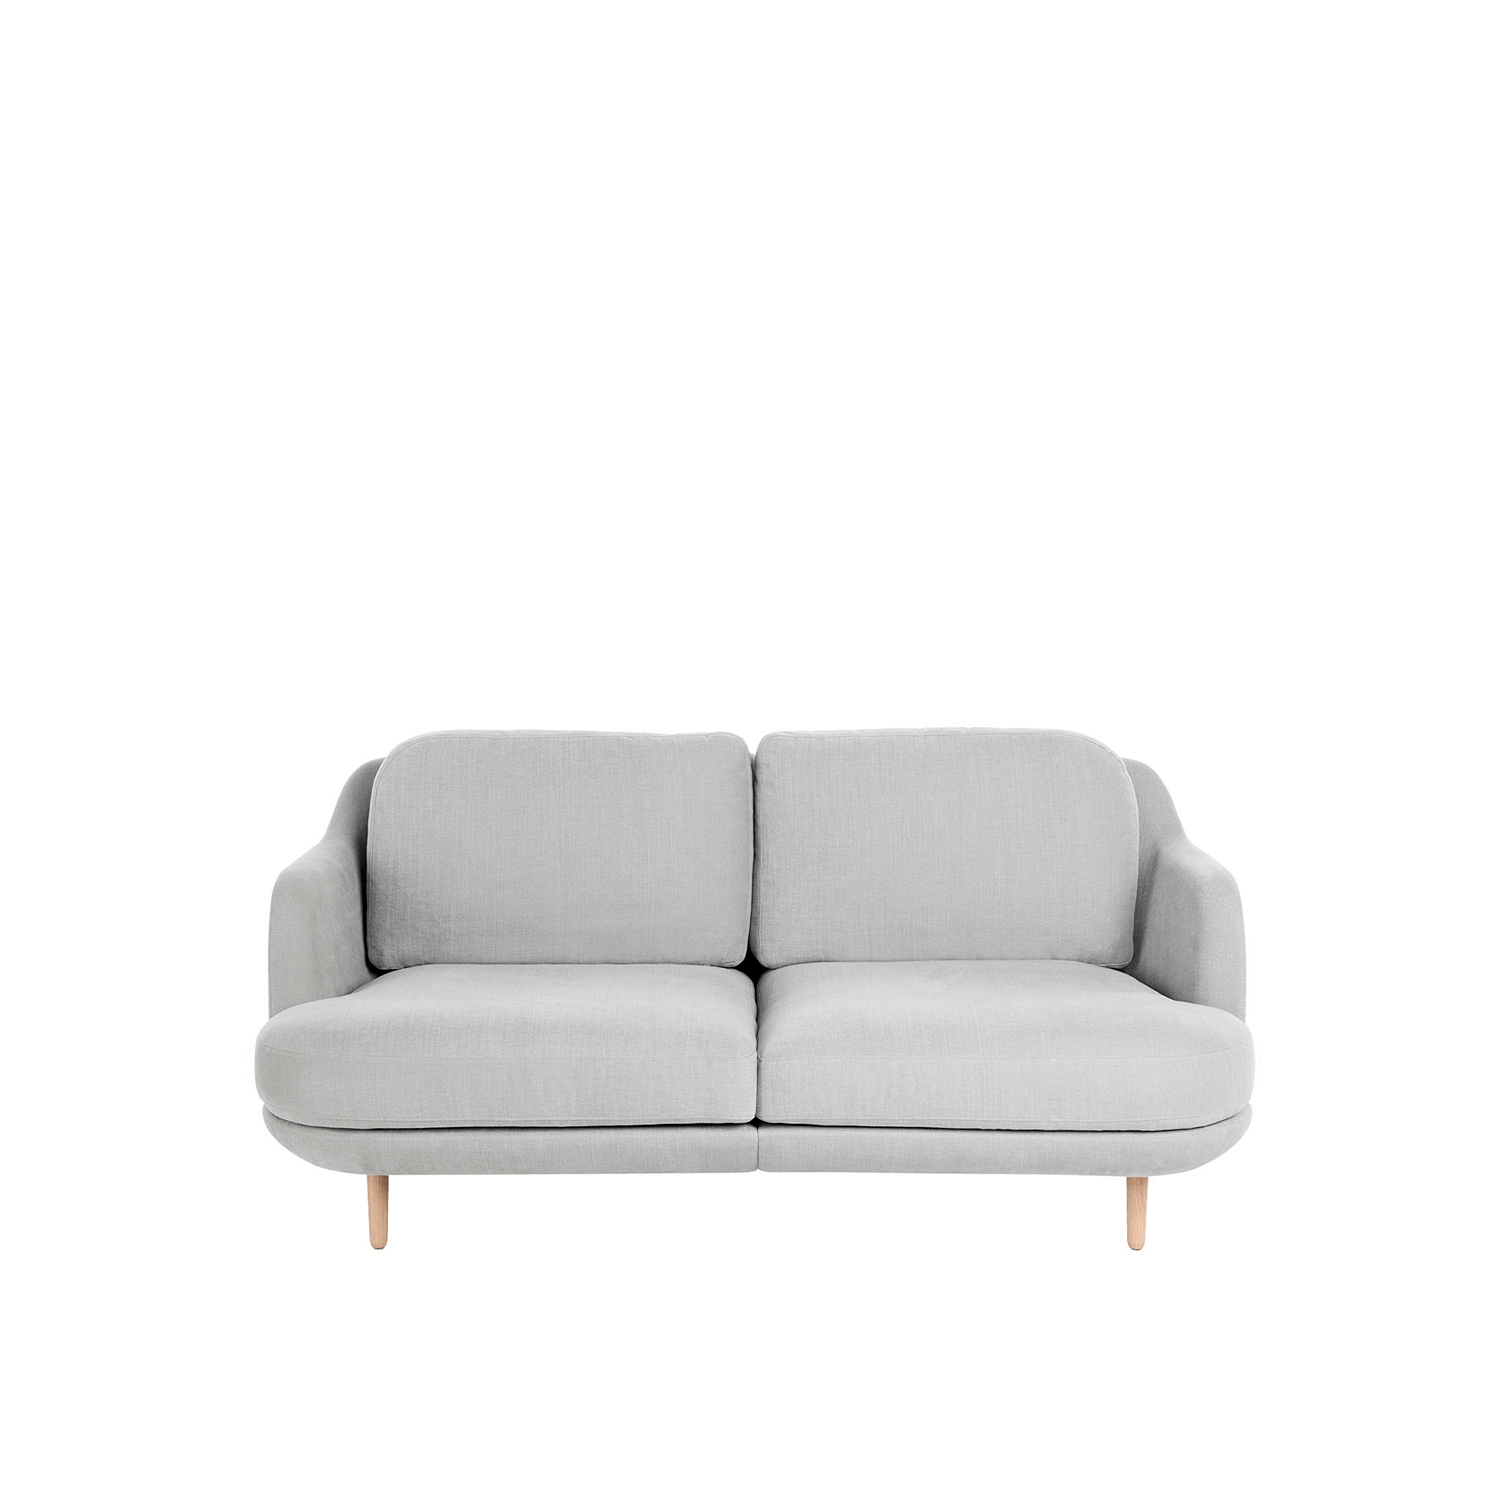 Lune Sofa 200 - The sculptural and curvy Lune design is characteristic of Jaime Hayon. In his quest to capture the intersection of clean Nordic aesthetics and southern elegance, Hayon has paired a playful design with Fritz Hansen's renowned quality. 